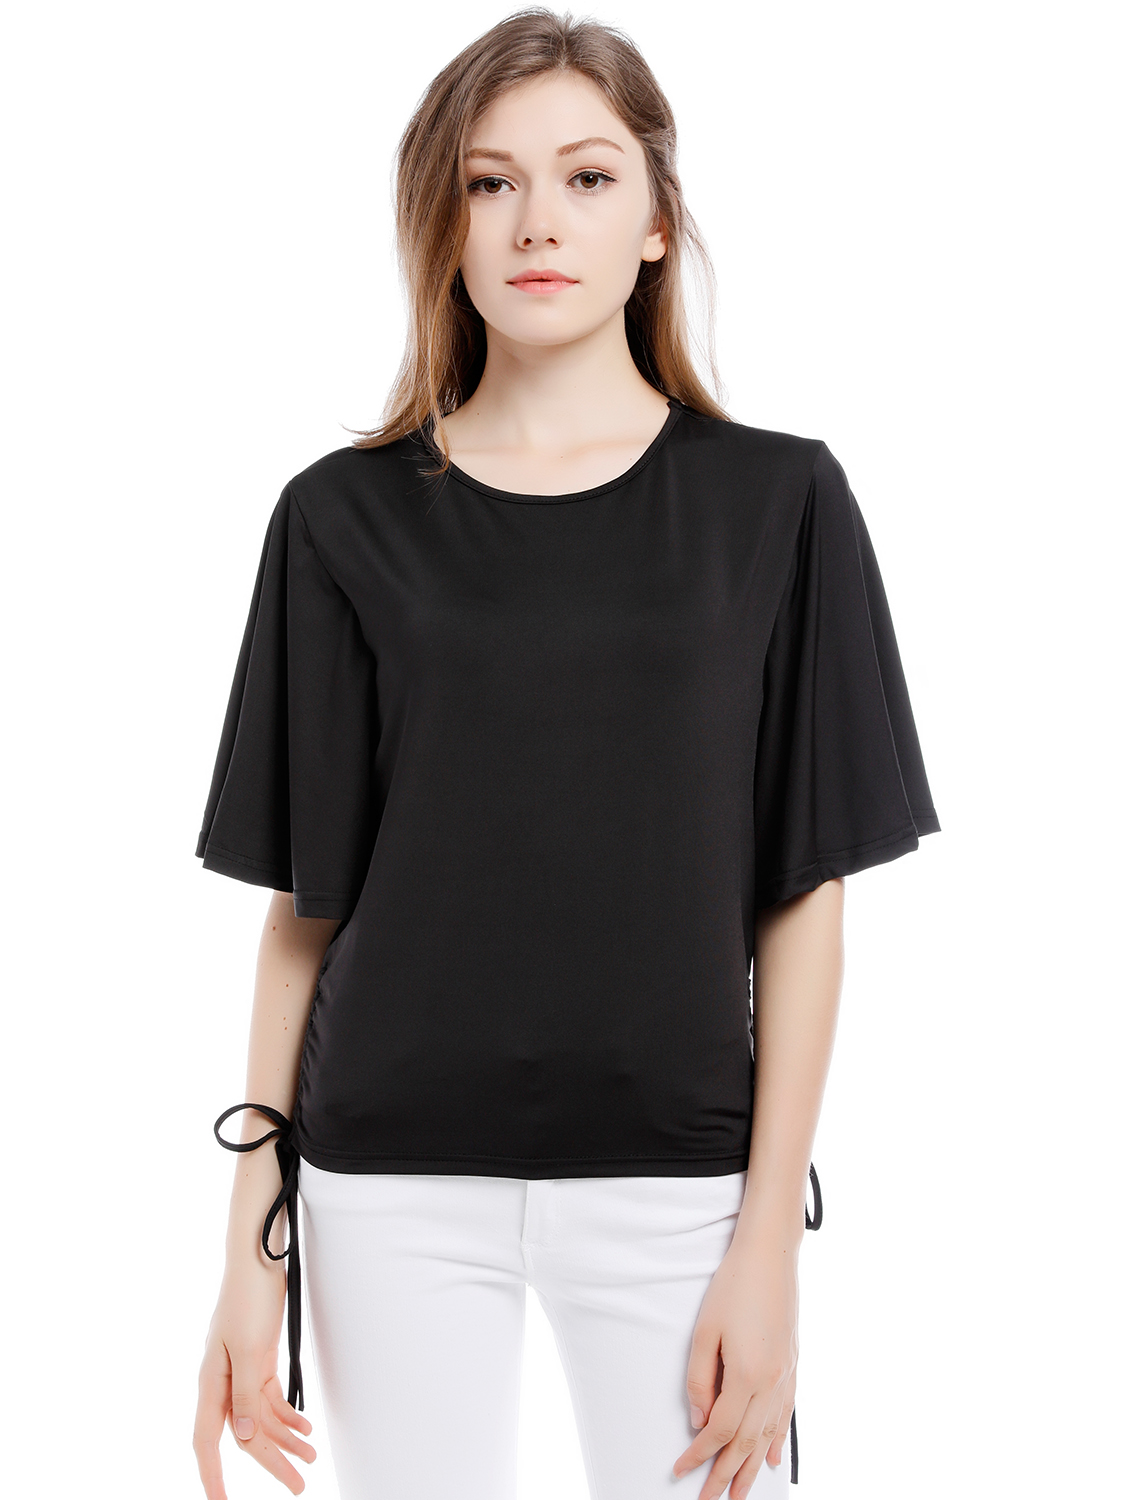 0f3105a90f Blooming Jelly O-Neck Black Blouse Batwing Tops Side Bow Tie For Women  Casual Summer